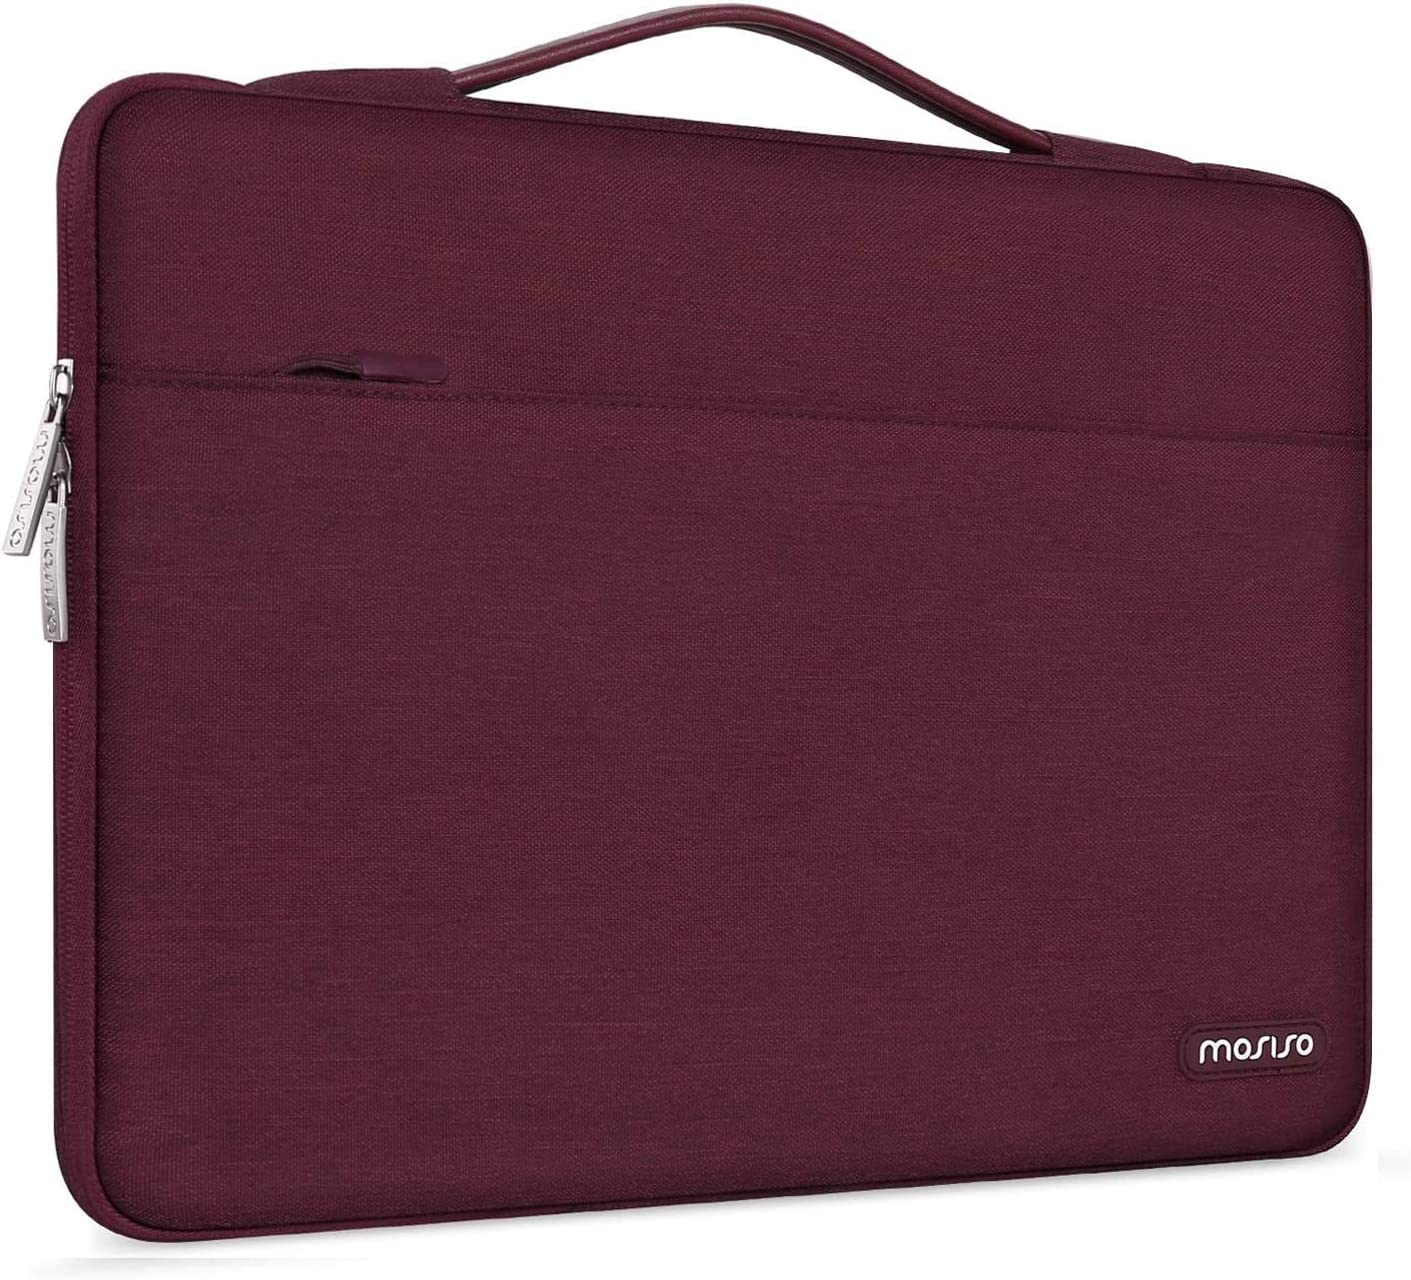 MOSISO Laptop Sleeve 360 Protective Case Bag Compatible with 13-13.3 inch MacBook Pro, MacBook Air, Notebook Computer, Polyester Briefcase with Trolley Belt, Wine Red